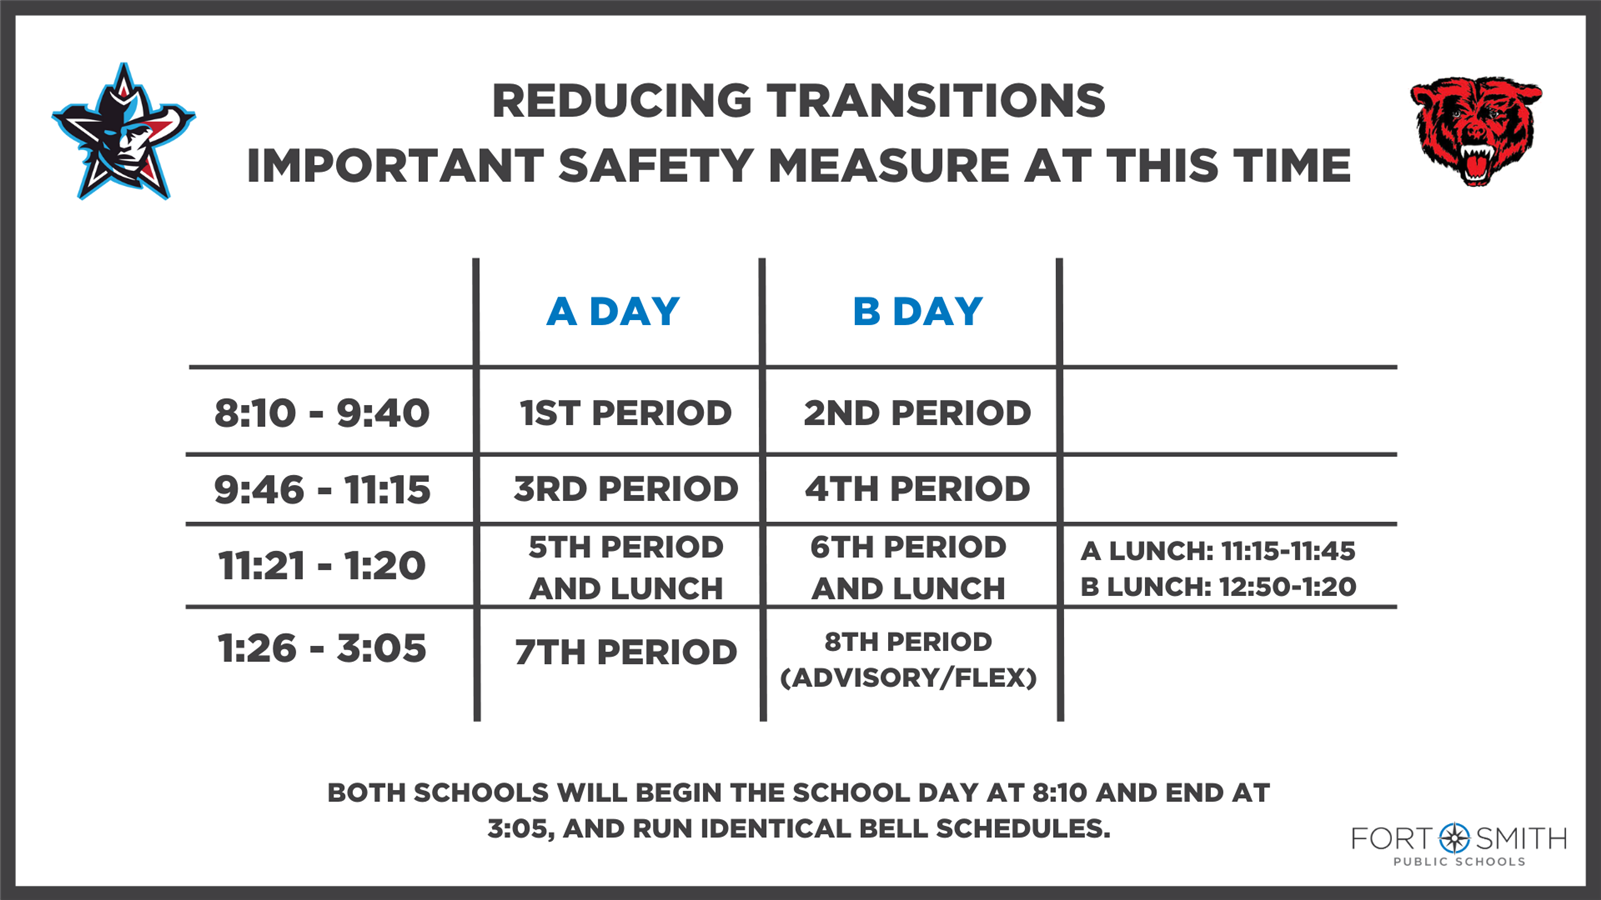 Reducing Transitions Important Safety Measure at this time